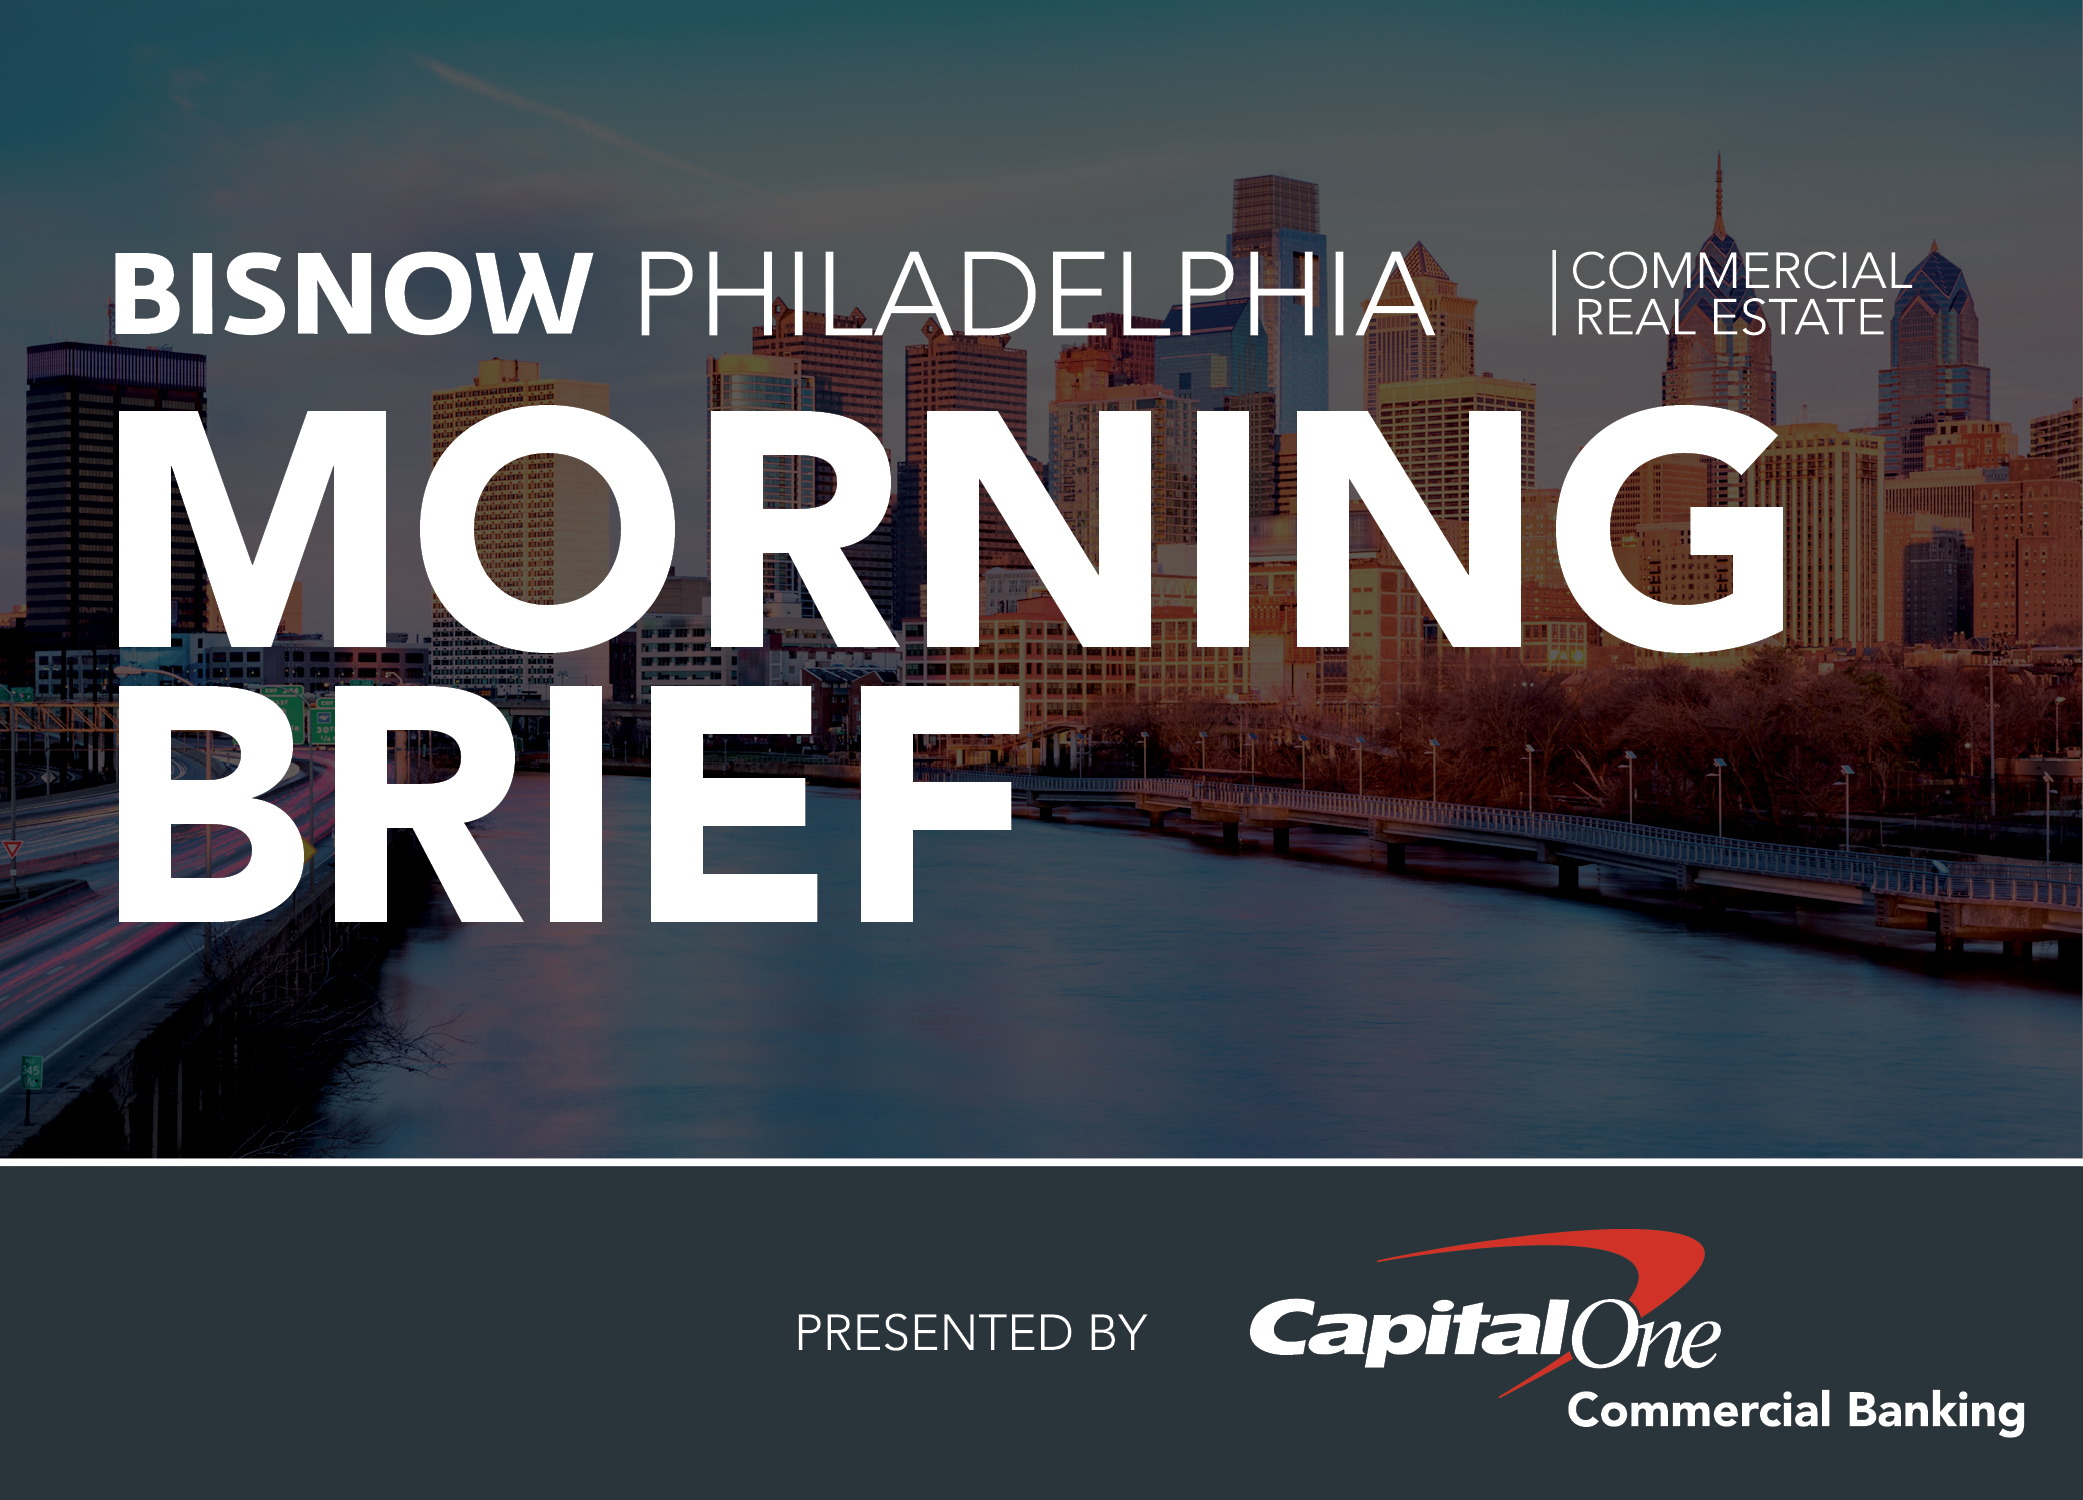 Bisnow Morning Brief Philadelphia Morning Brief